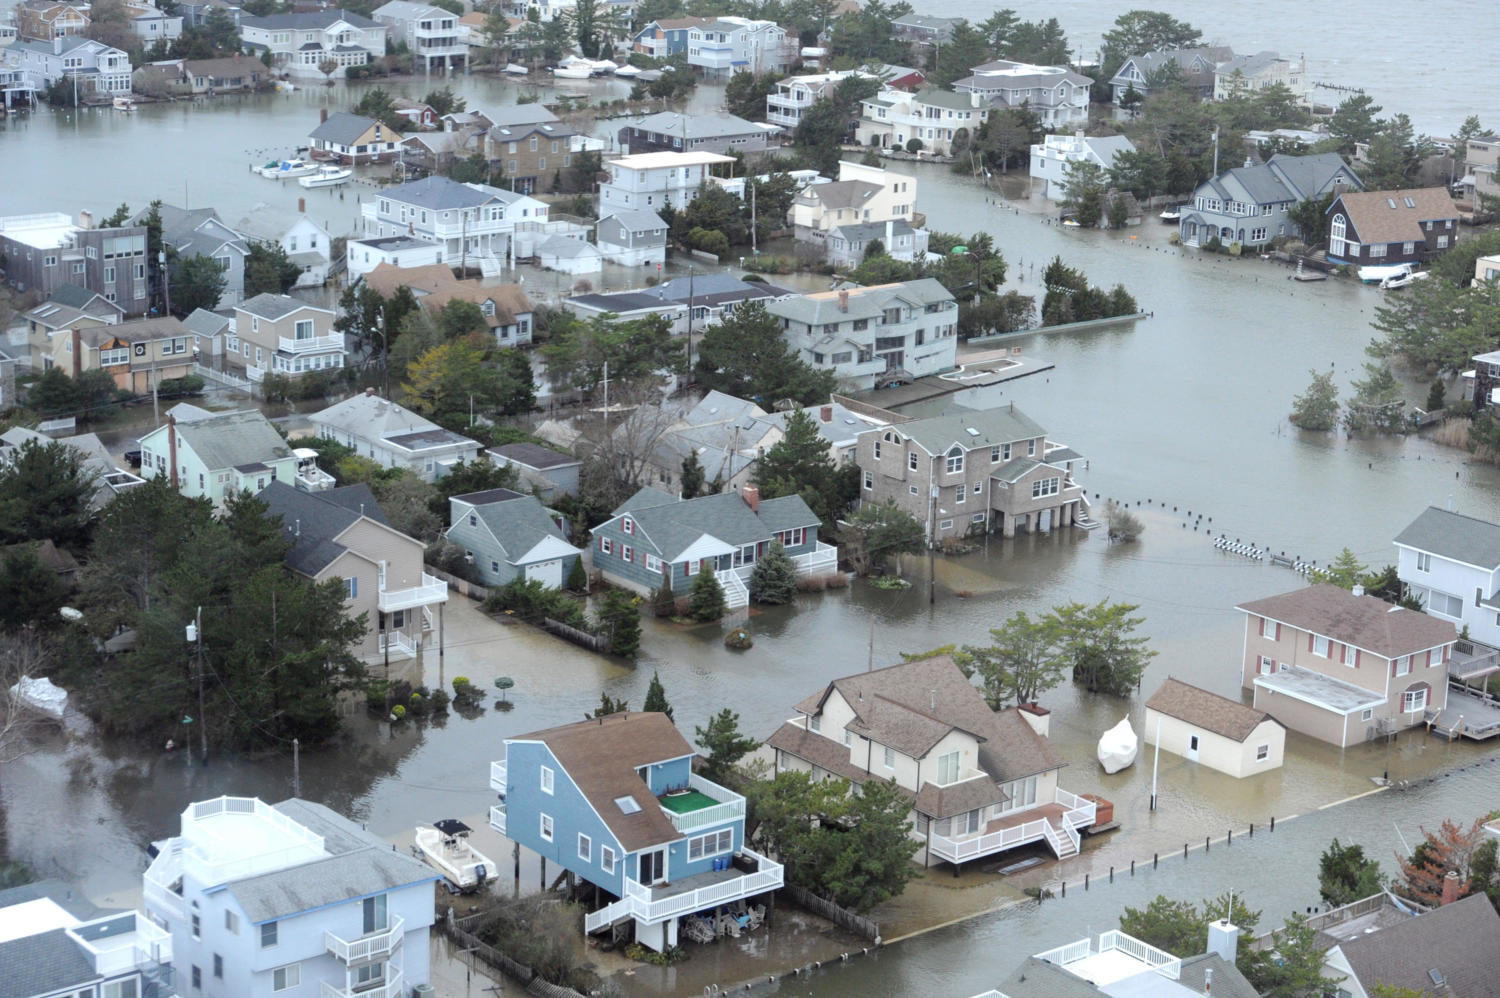 A+portion+of+Harvey+Cedars%2C+on+the+bay+side+of+Long+Beach+Island+on+the+New+Jersey+shore%2C+is+under+water%2C+October+30%2C+2012%2C+after+Hurricane+Sandy+blew+across+the+New+Jersey+barrier+islands.+This+portion+of+the+road+is+in+Harvey+Cedar.+%28Clem+Murray%2FPhiladelphia+Inquirer%2FMCT%29